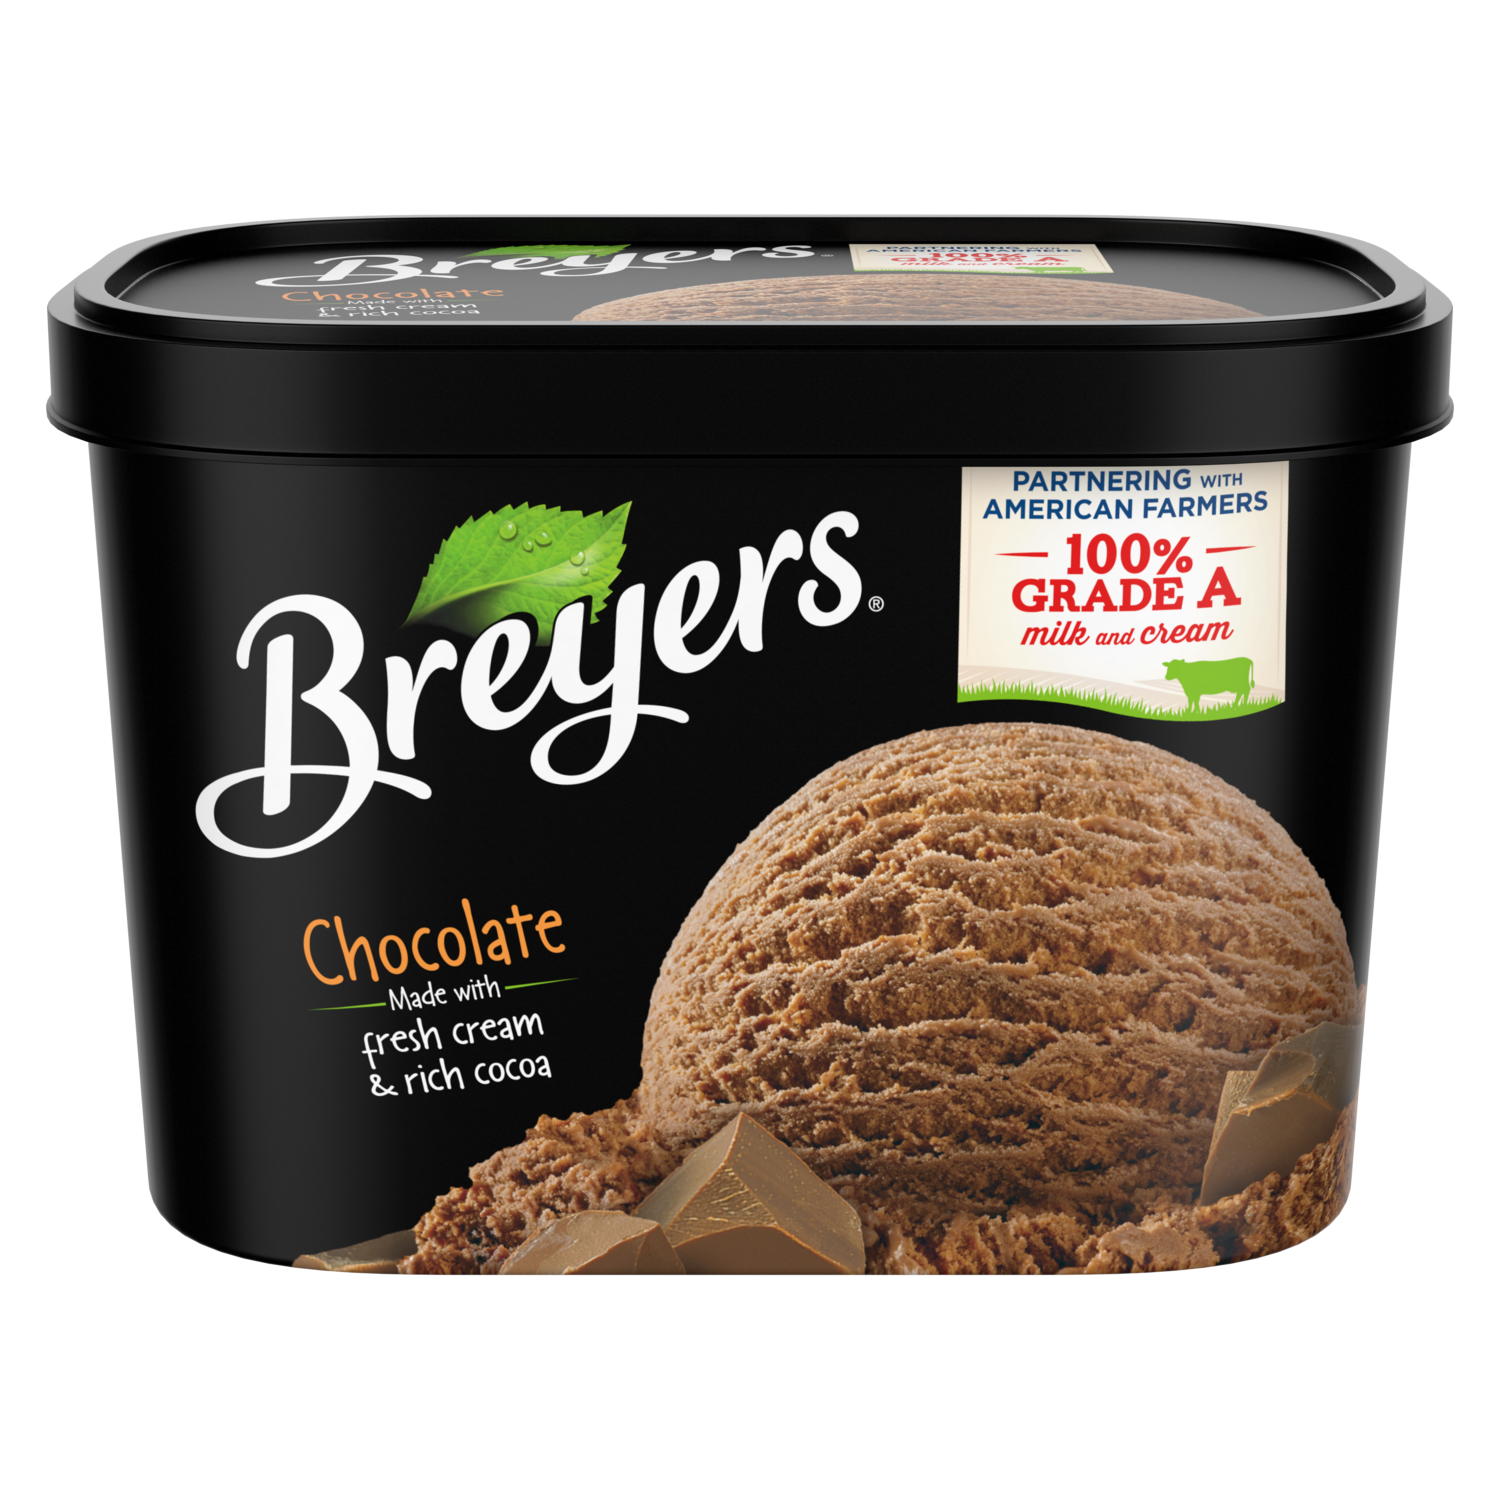 A 48 ounce tub of Breyers Chocolate front of pack